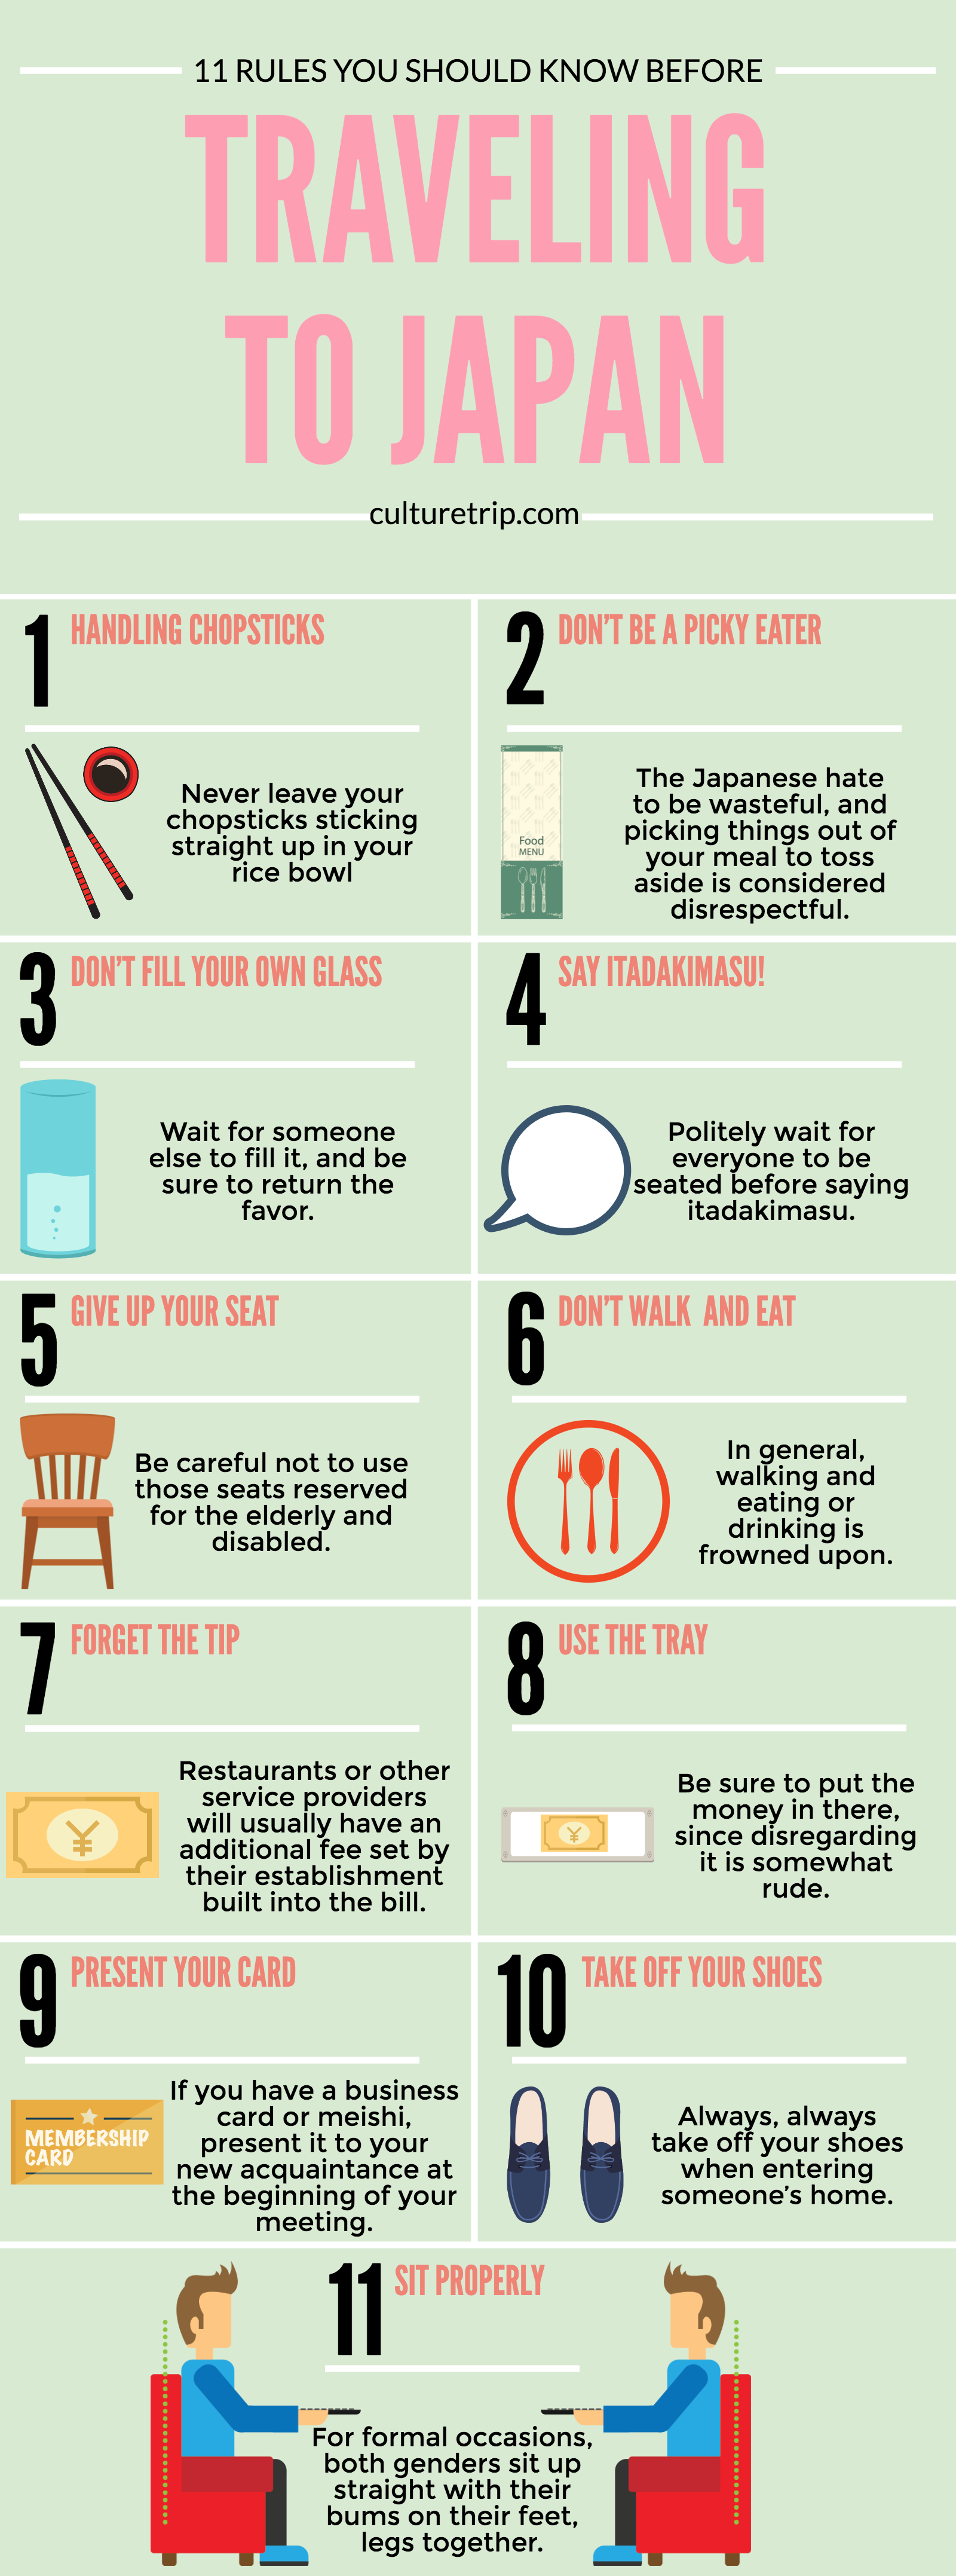 27 Etiquette Rules For Our Times - Forbes